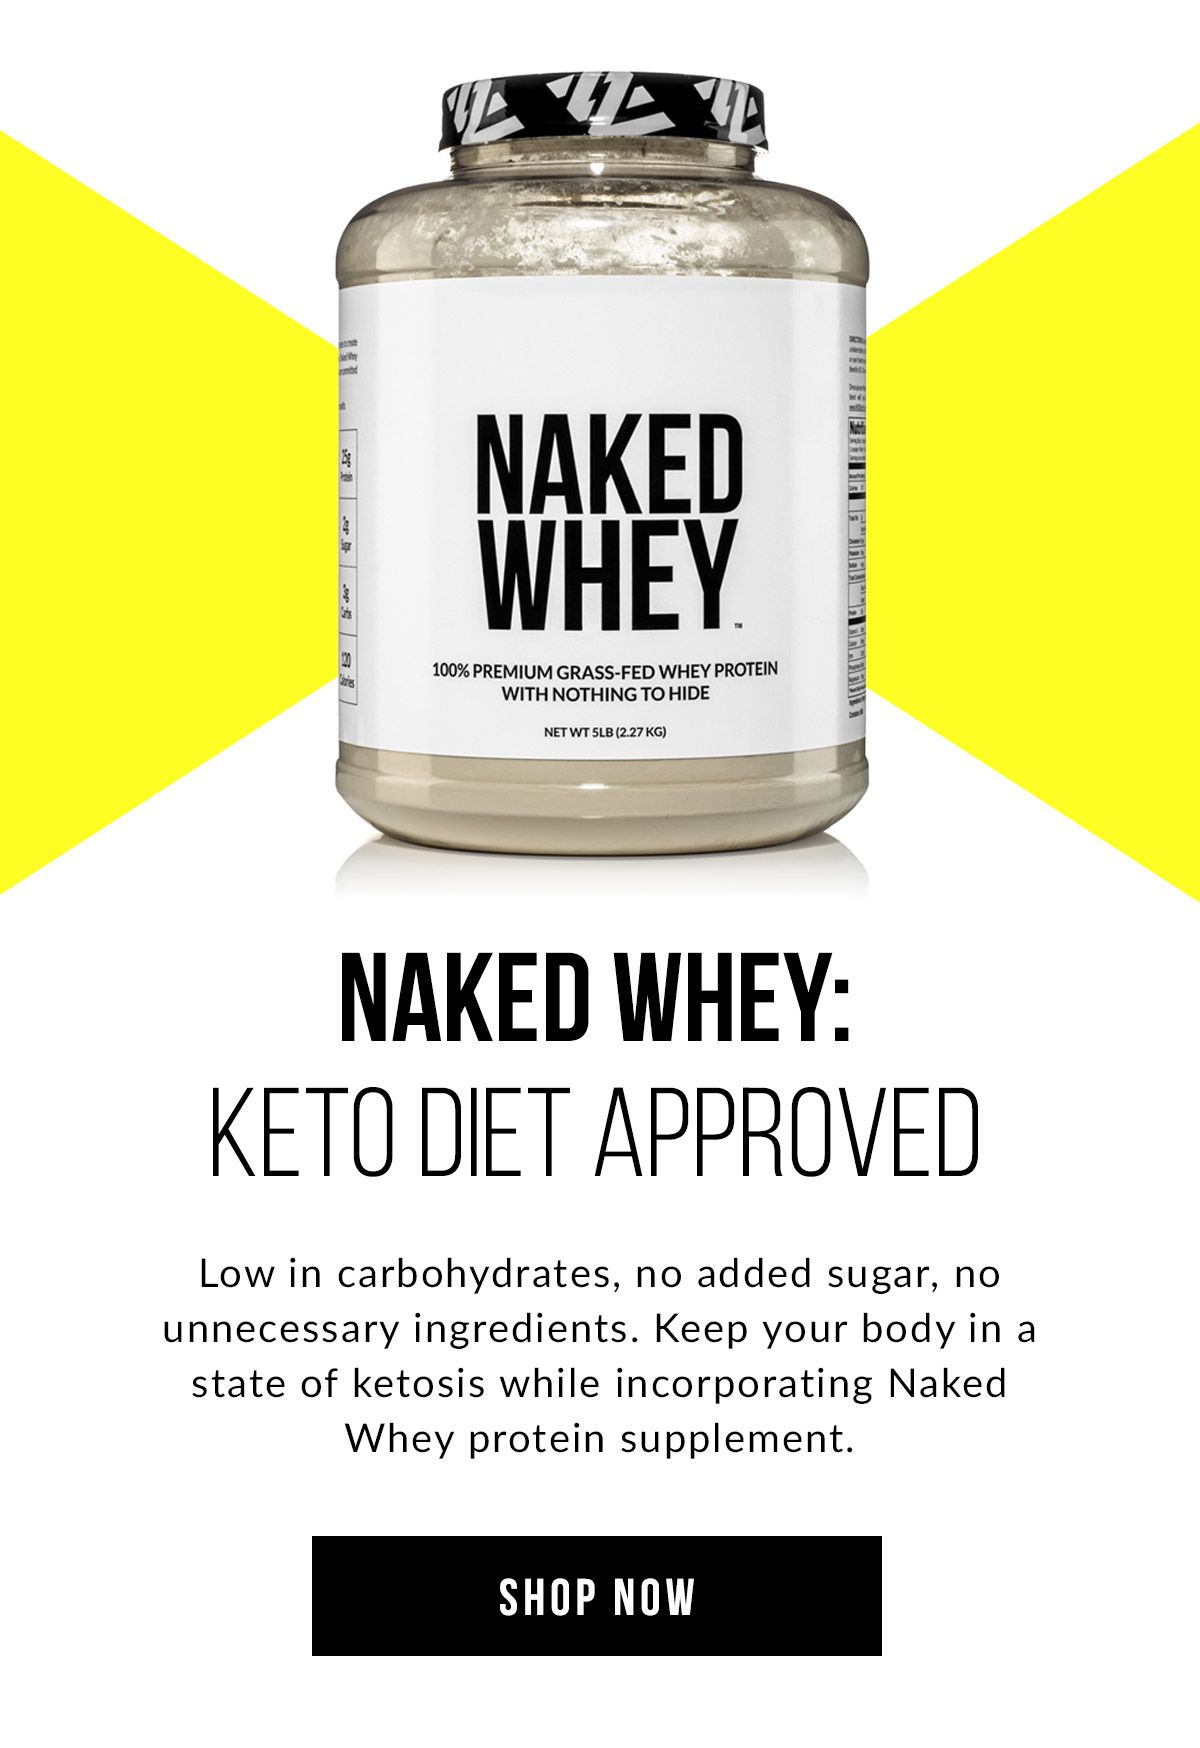 NAKED WHEY: Keto Diet Approved protein powder. #keto #nkdnutrition #wheyproteinrecipes